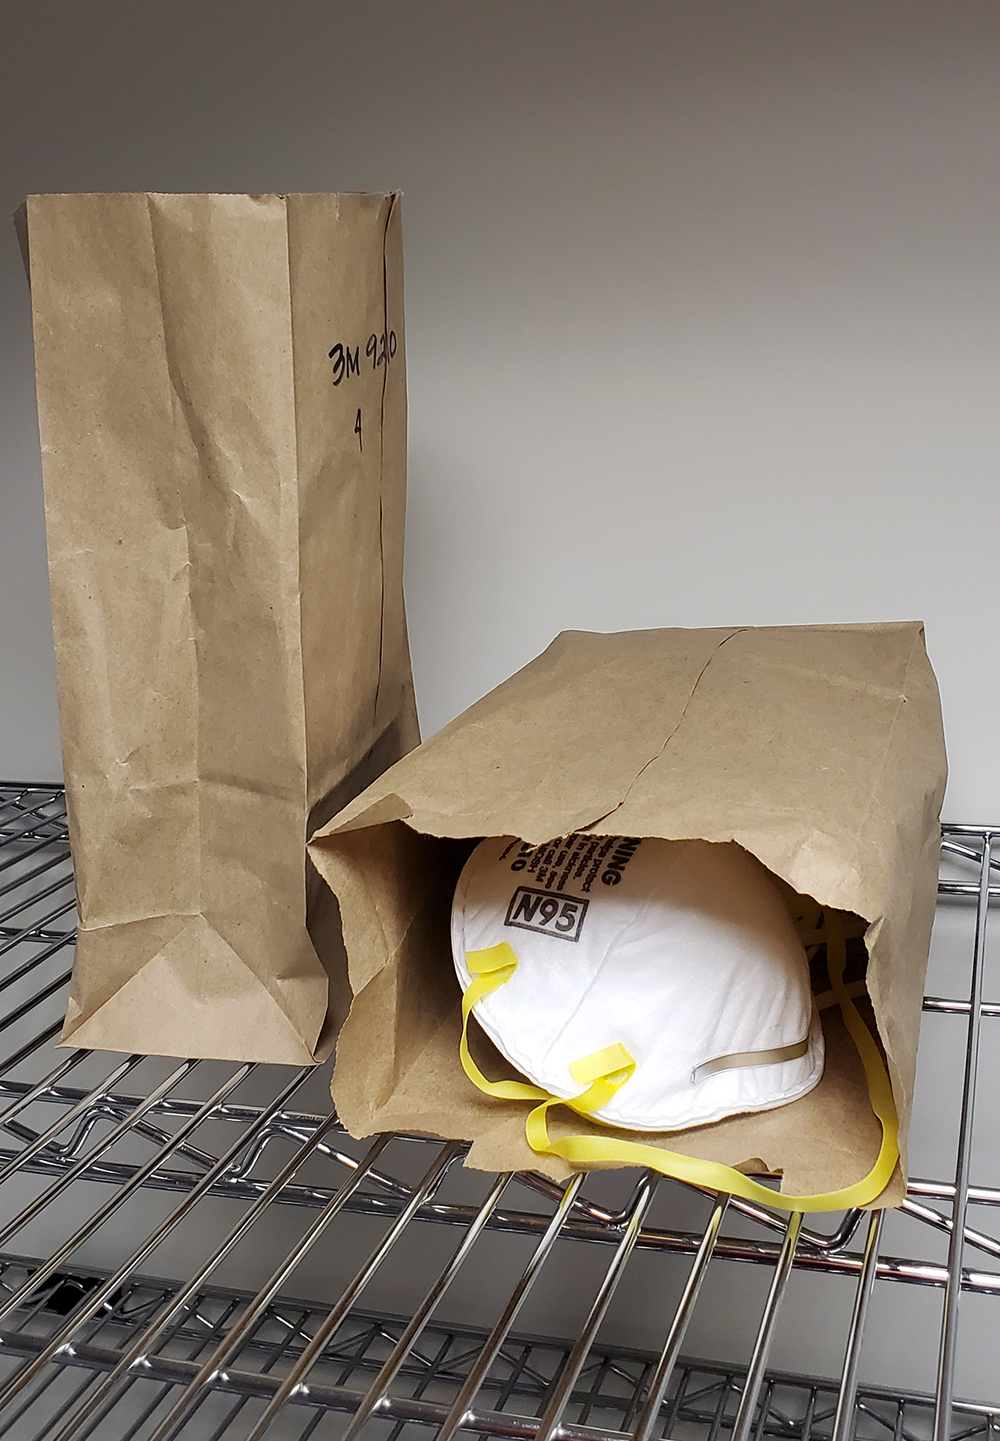 Decontaminated masks in individually labeled paper bags